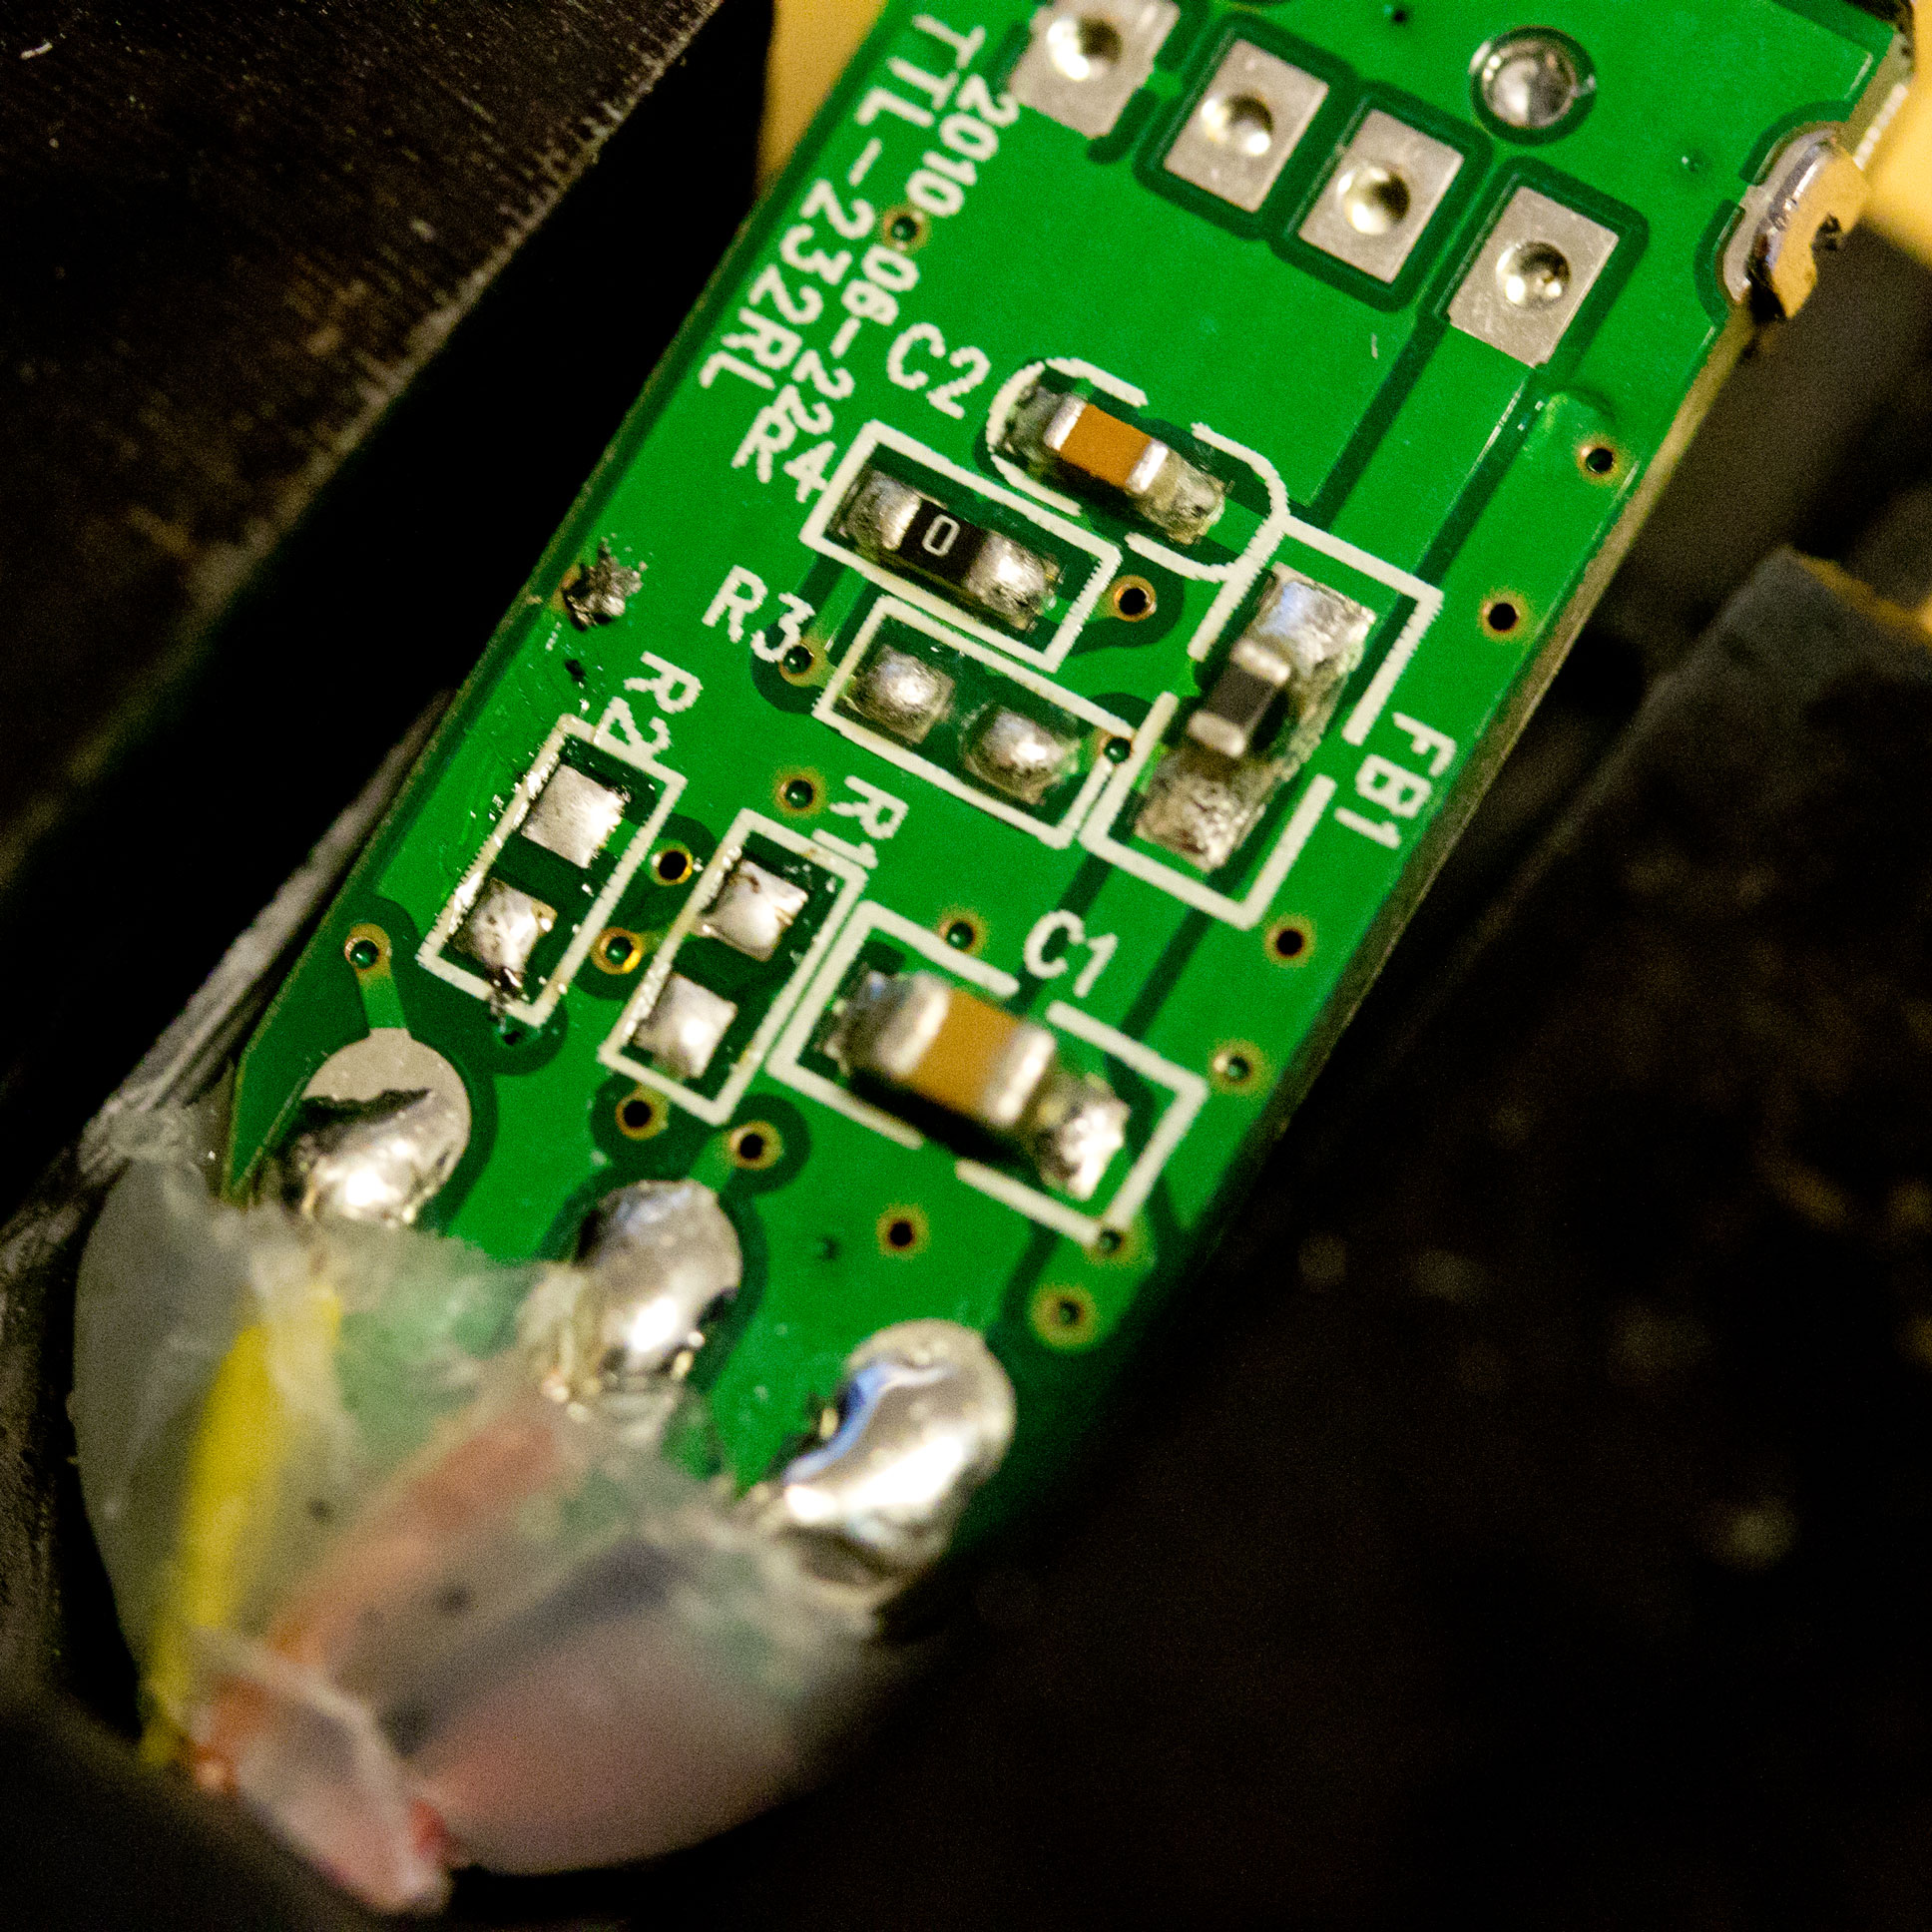 http://mewpro.cc/wp-content/uploads/remove-resistor.jpg